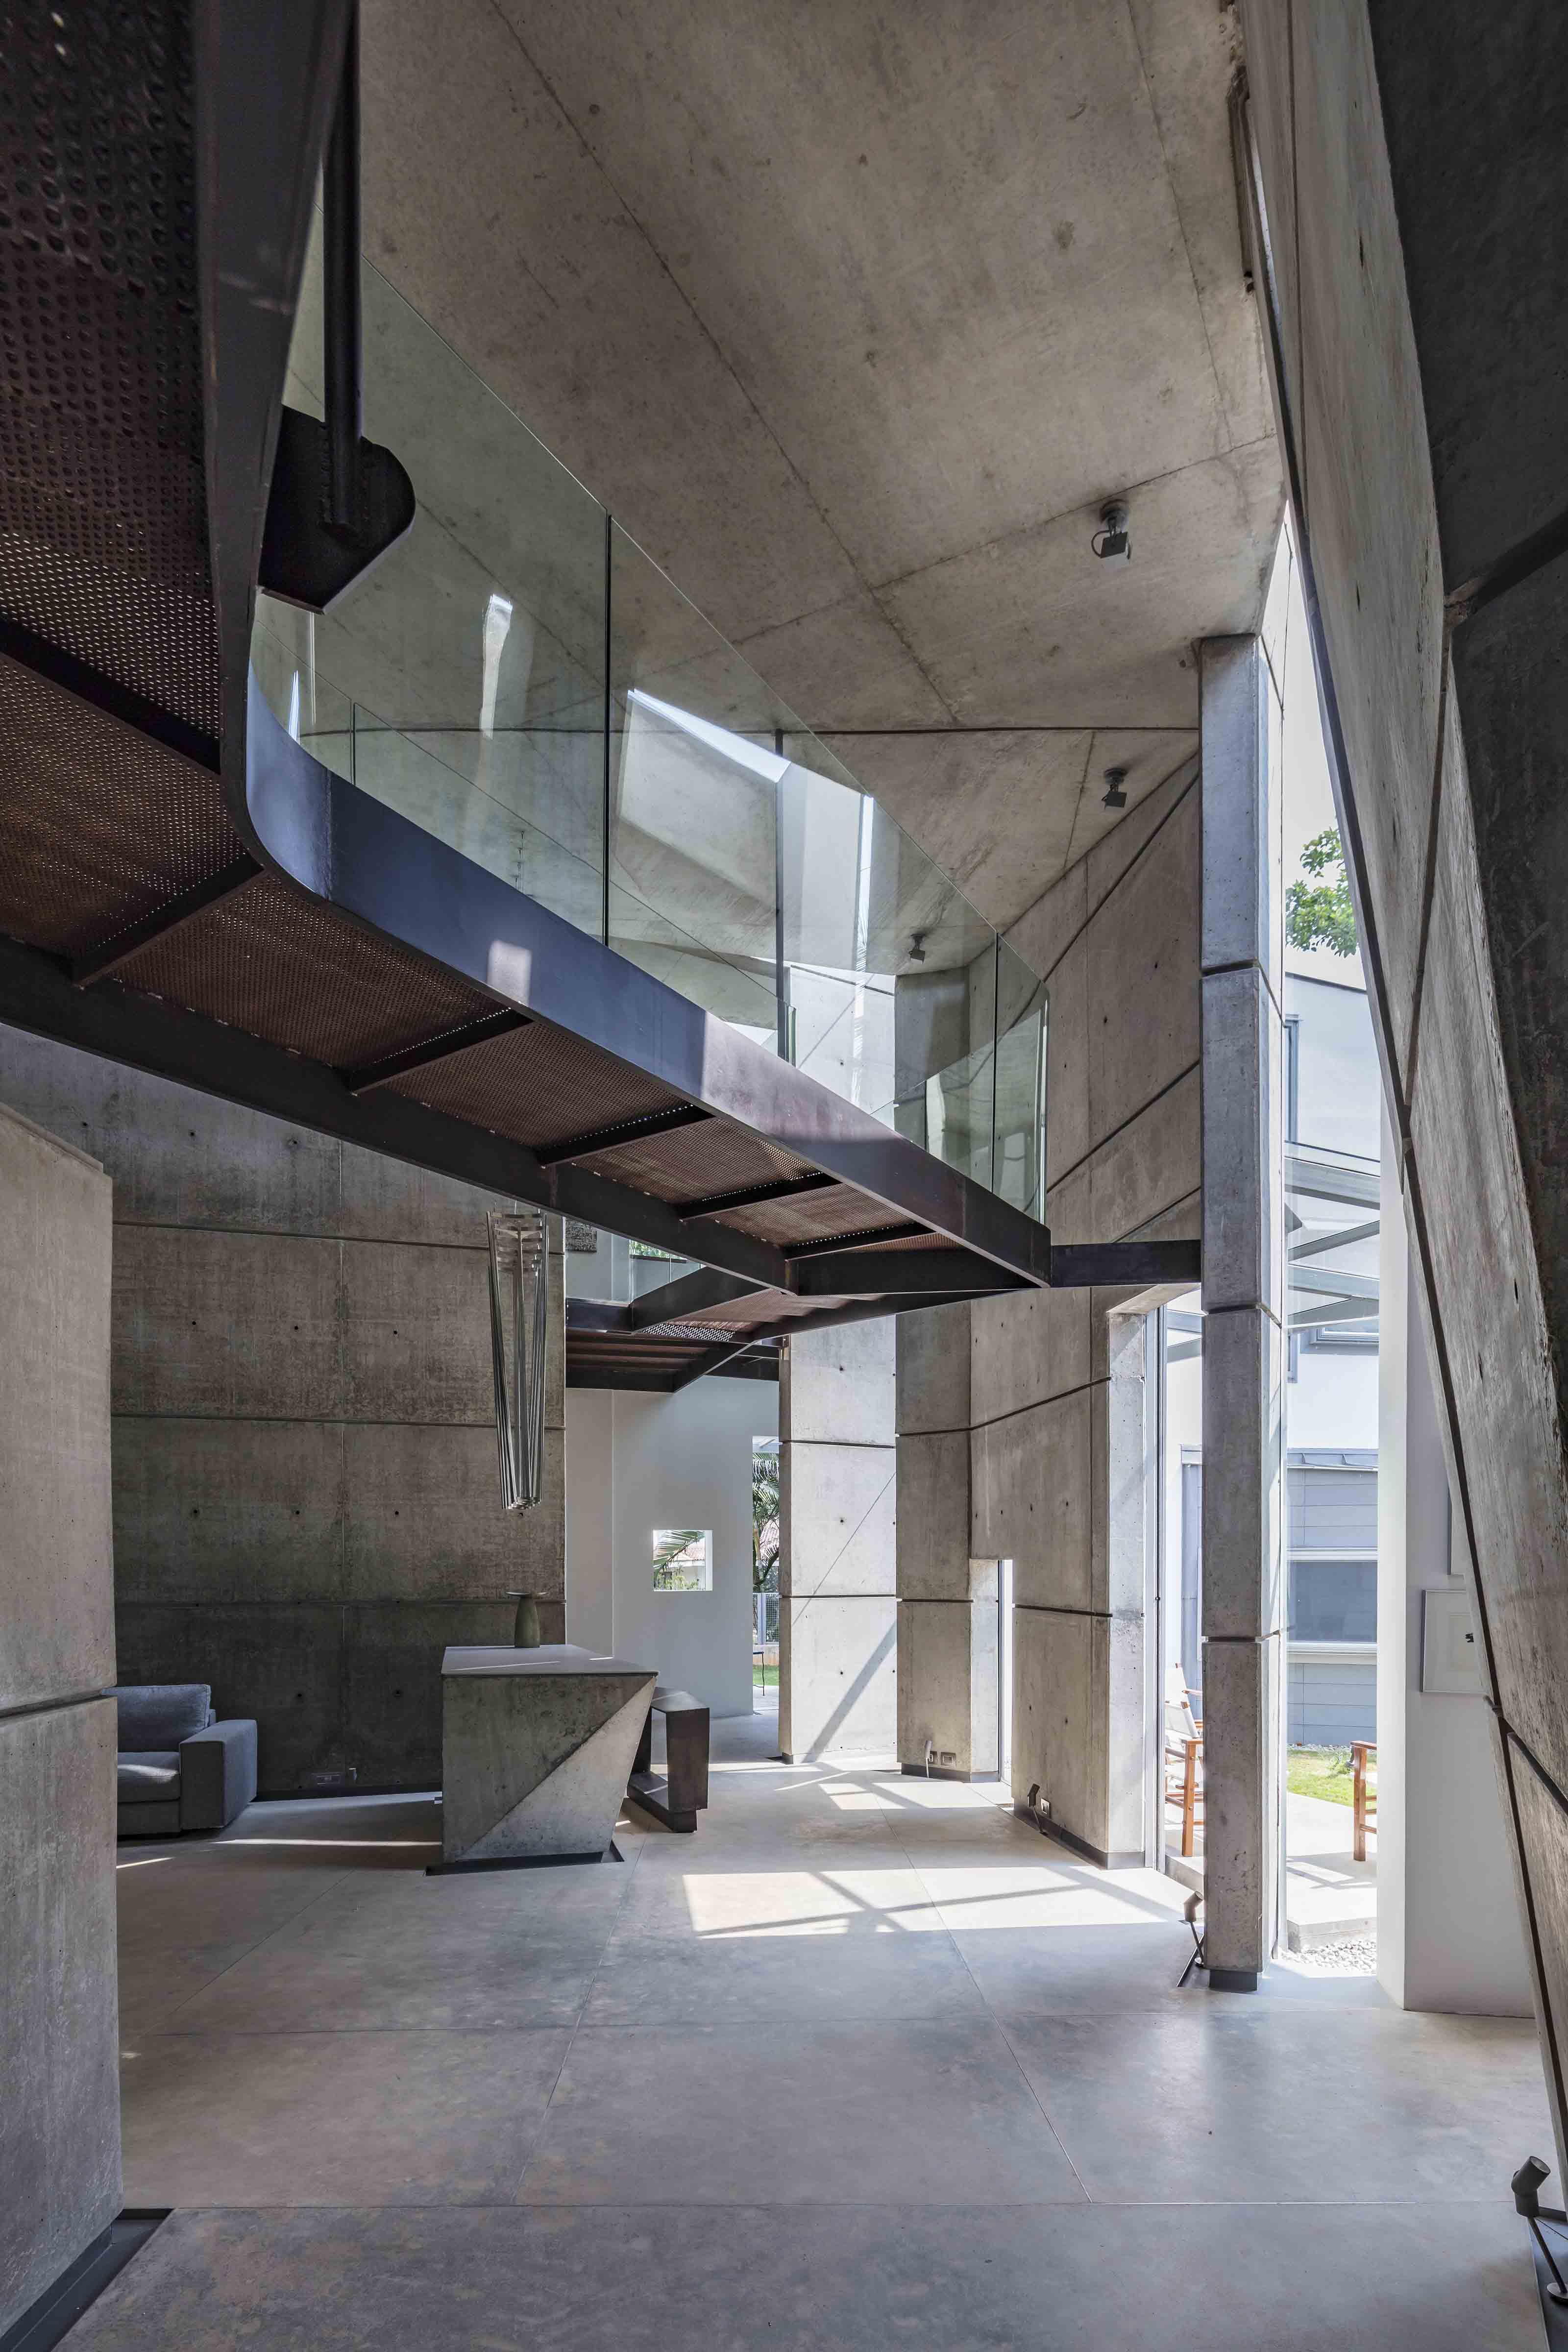 Mathew And Ghosh Architects House Of Stories As Entwined With Cryptic Enigmas